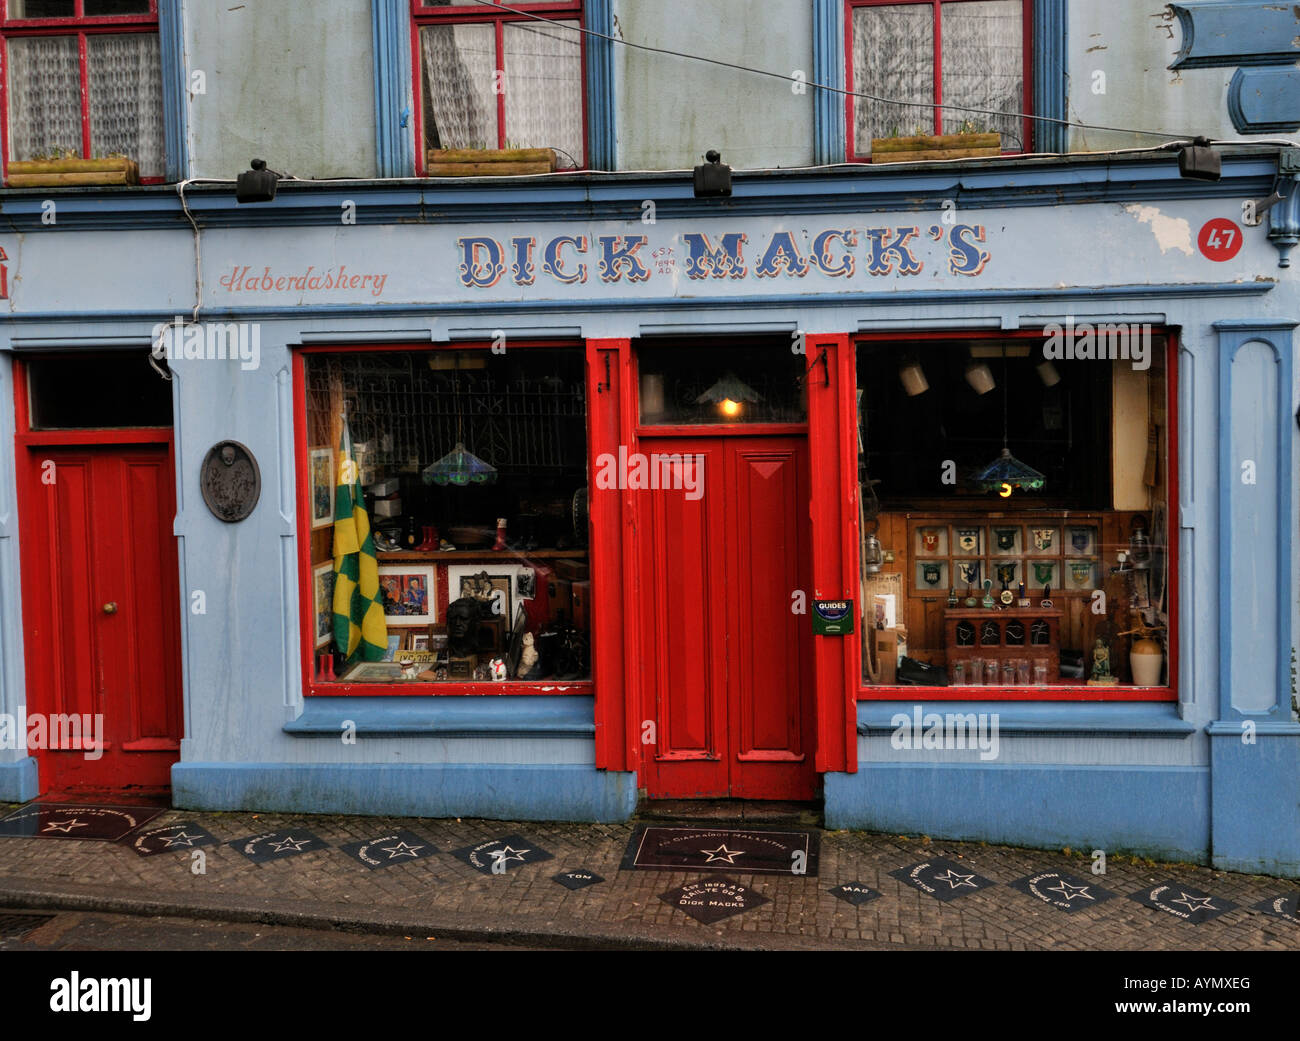 Dick Macks Famous Pub And Haberdashery With A Red Door In Dingle